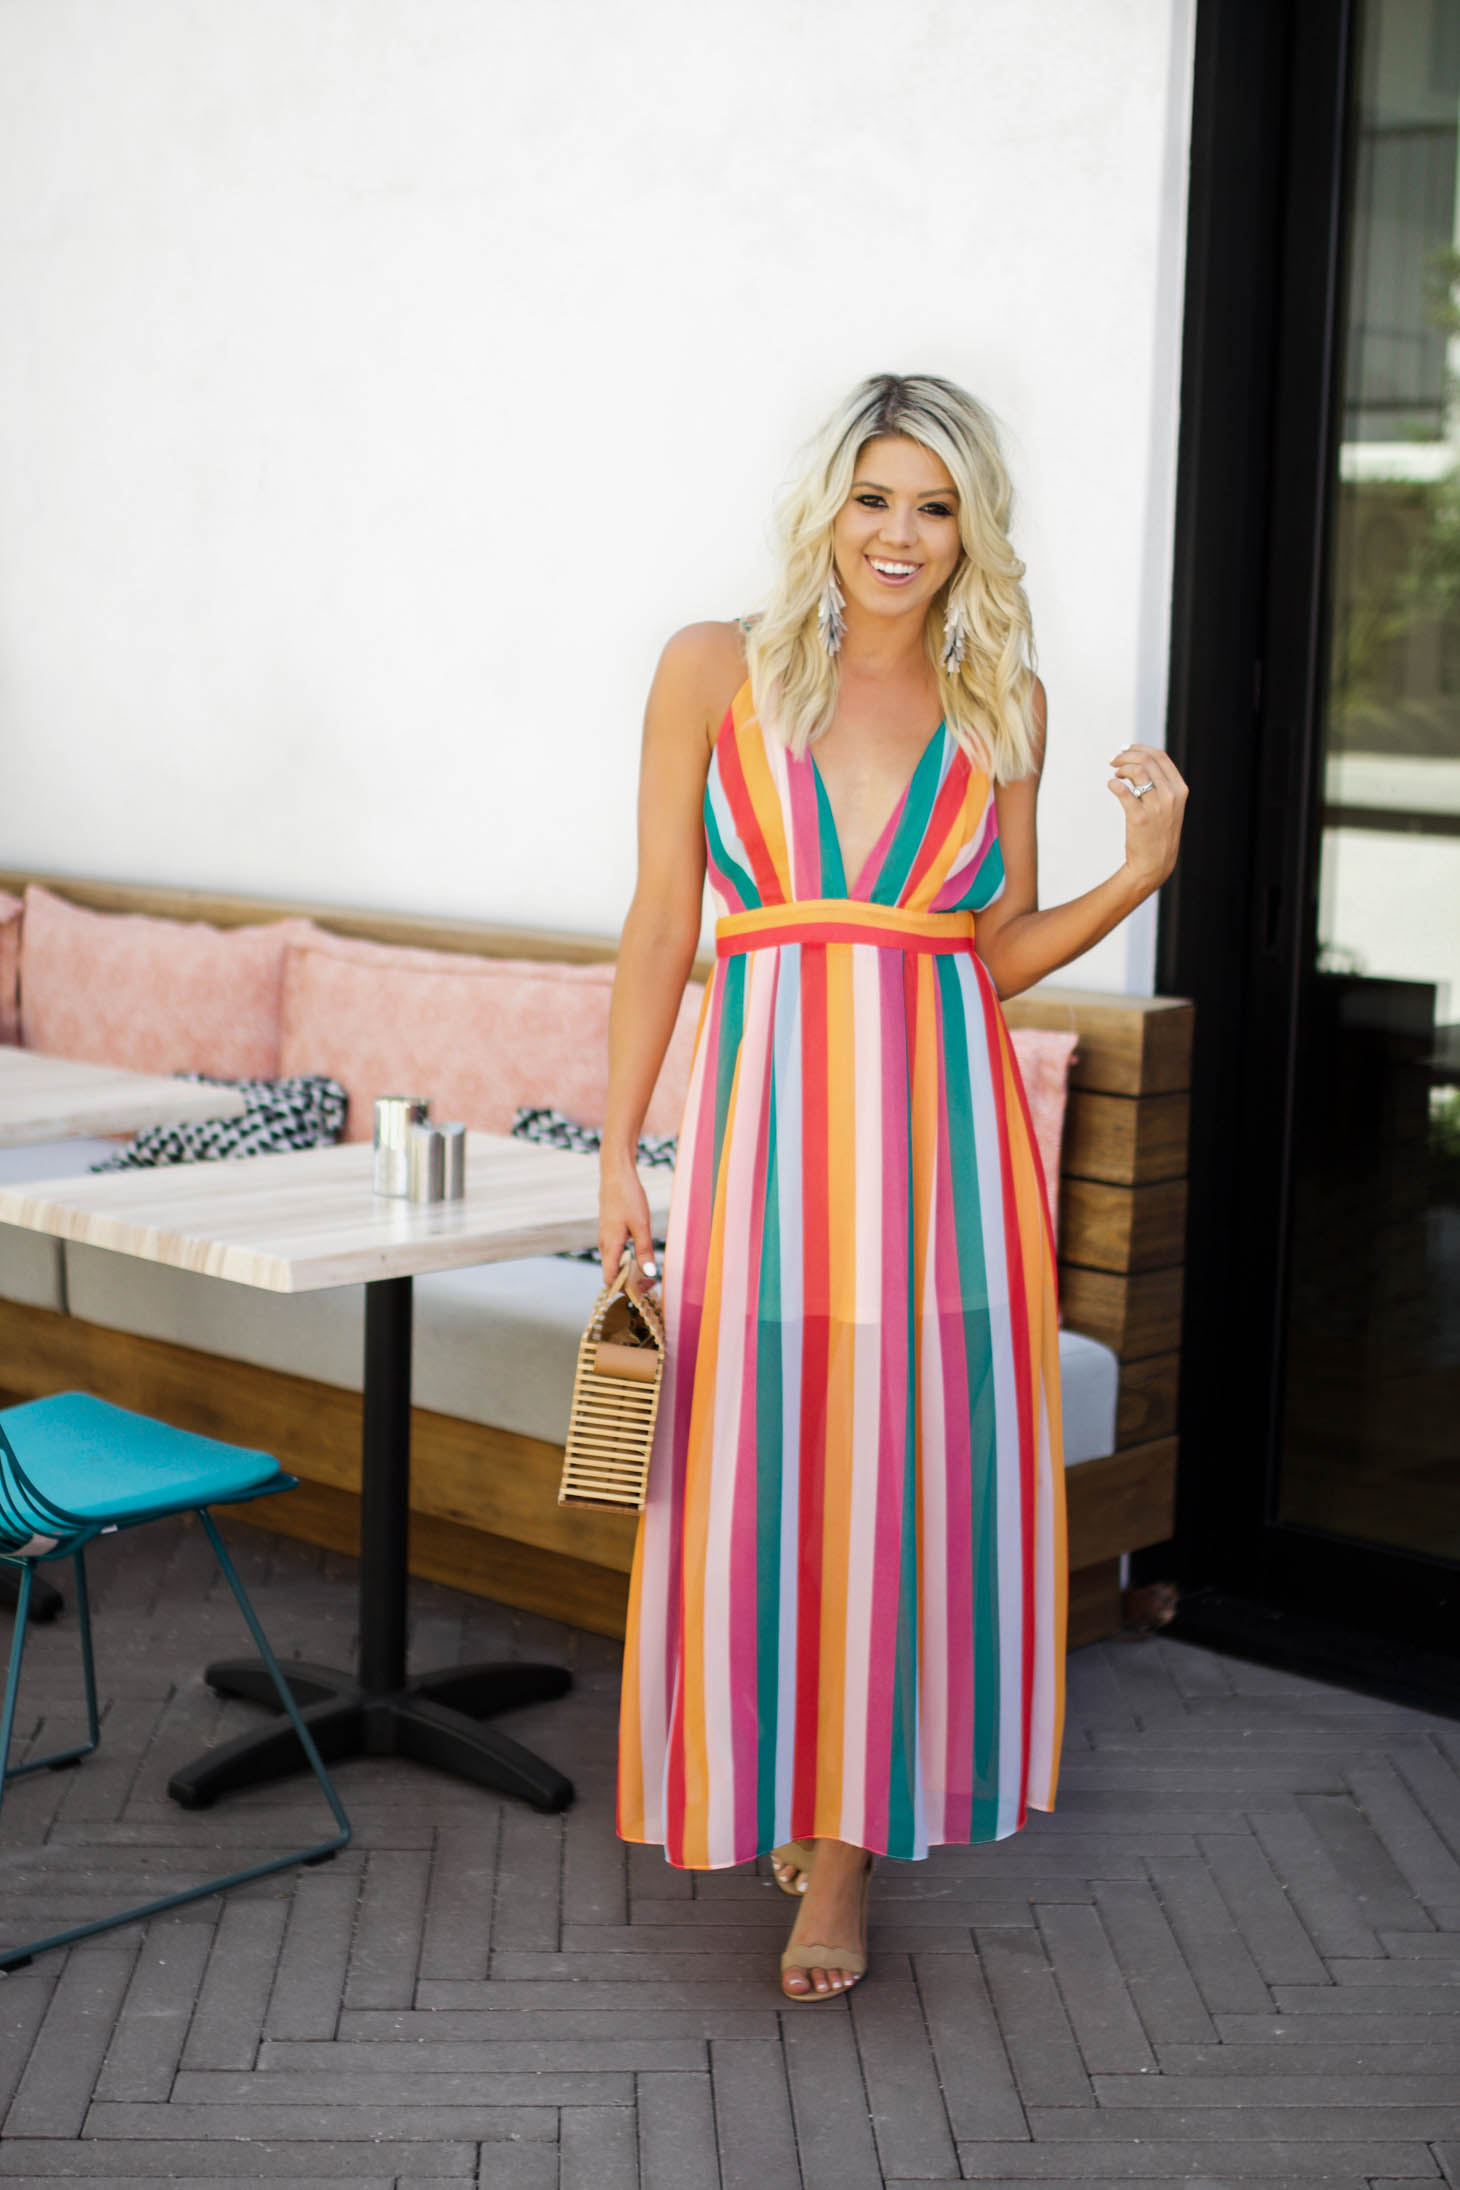 Erin Elizabeth of Wink and a Twirl shares this striped maxi from Red Dress Boutique